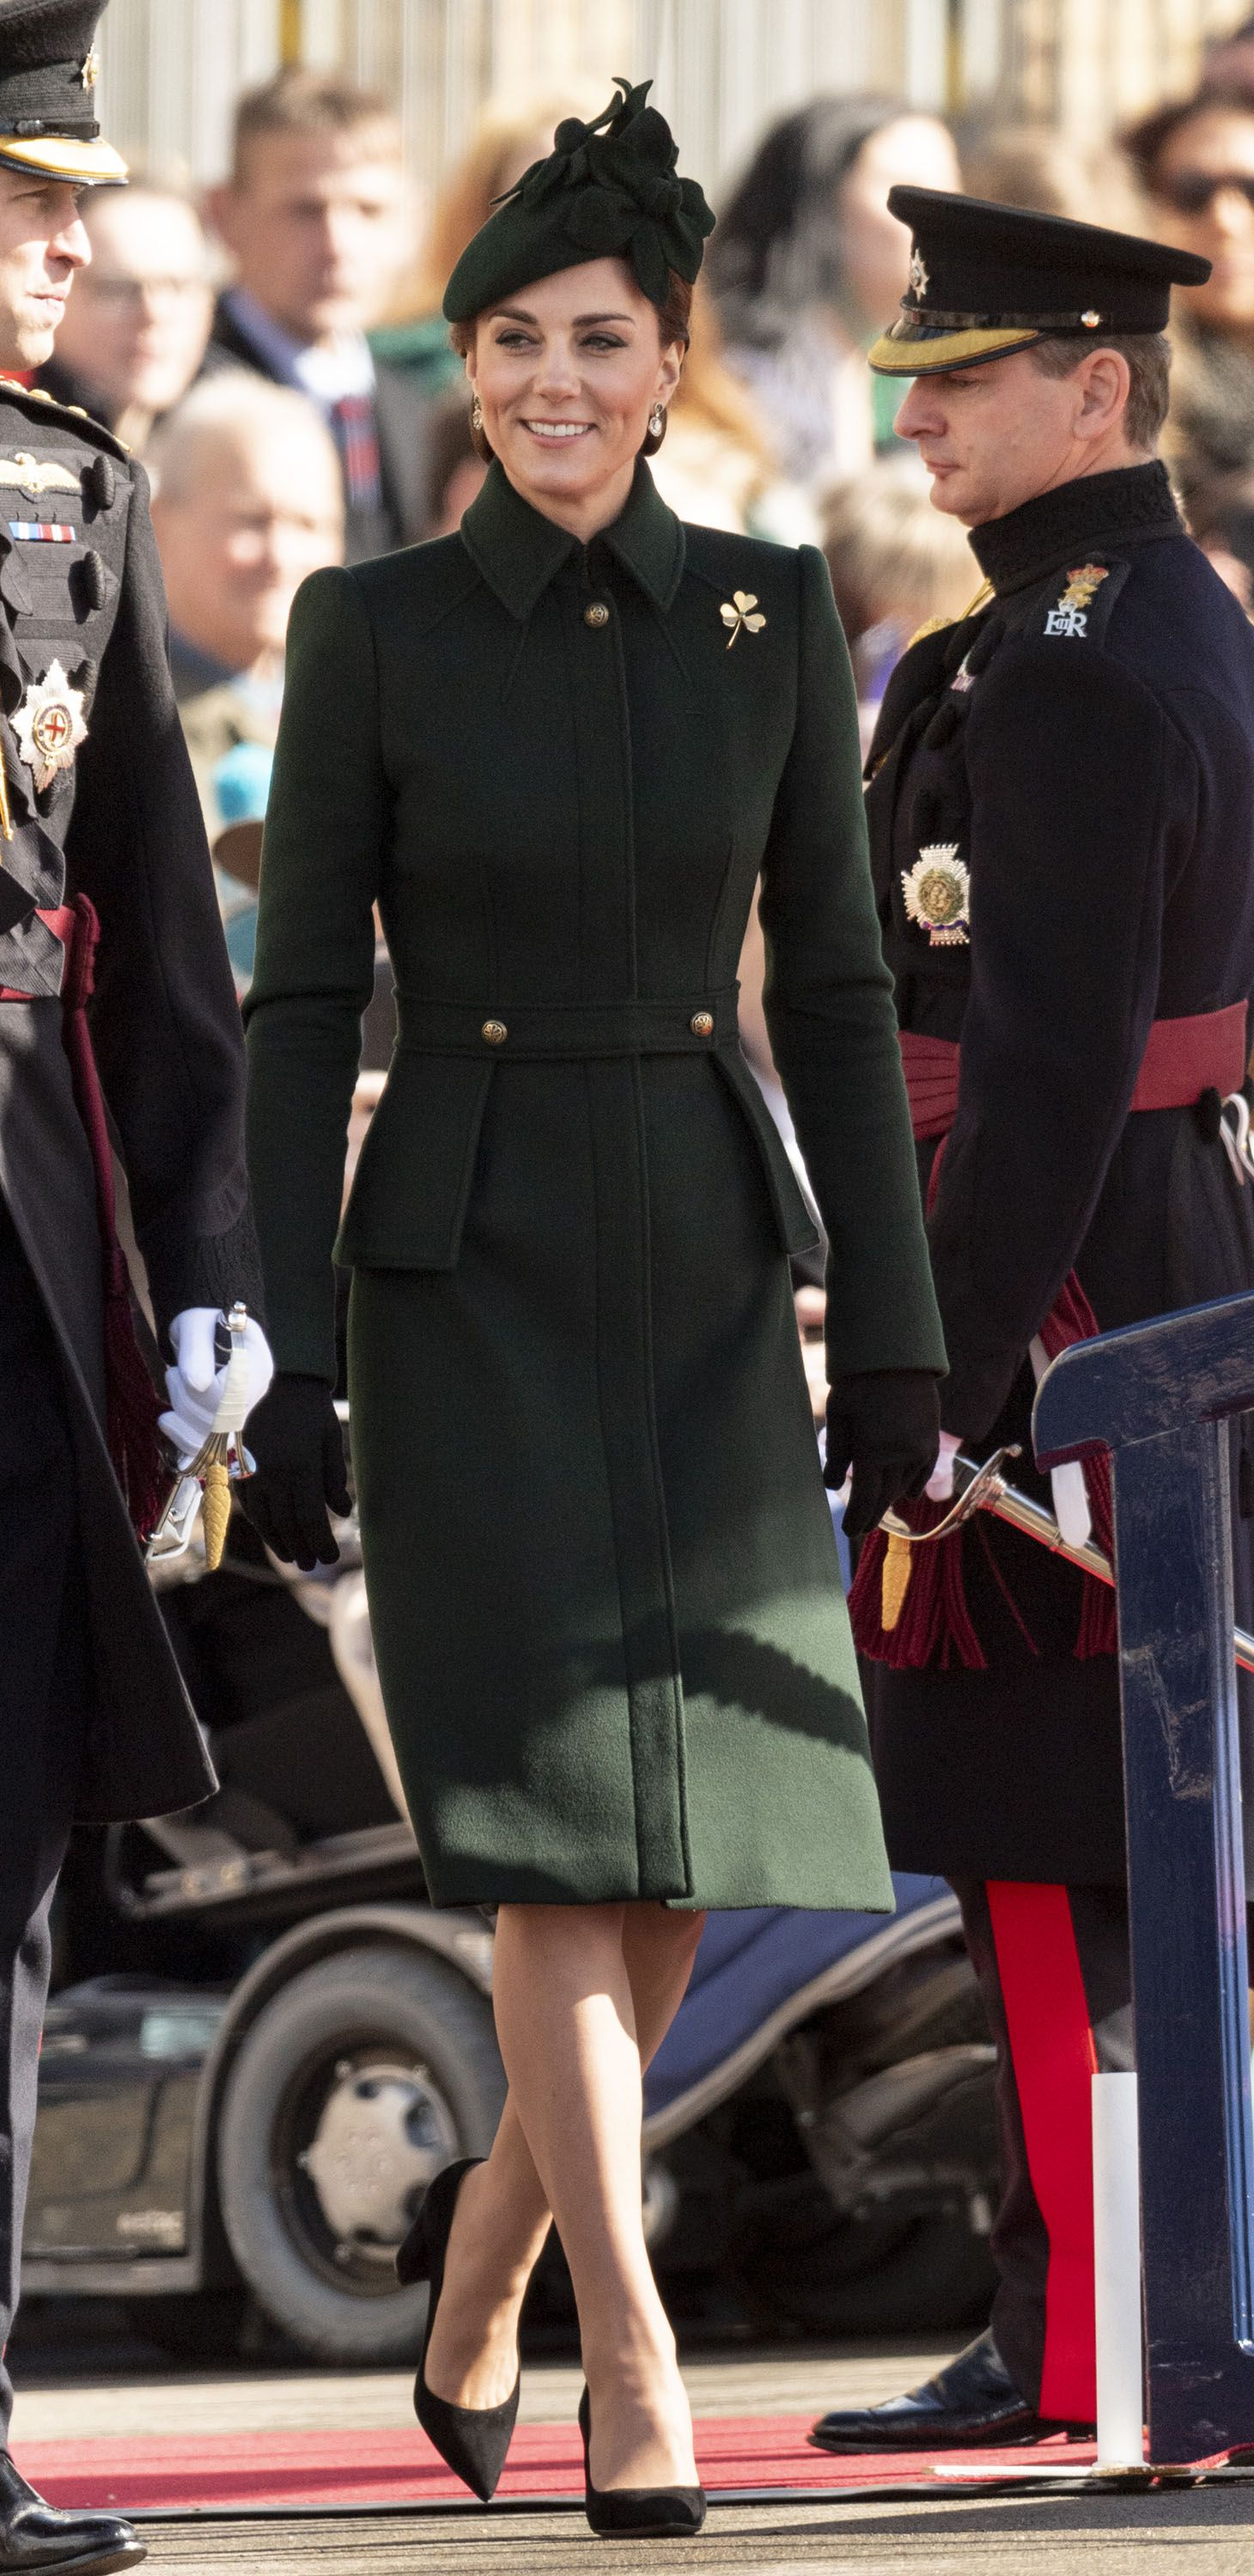 The Duke And Duchess Of Cambridge Attend The Irish Guards St Patrick